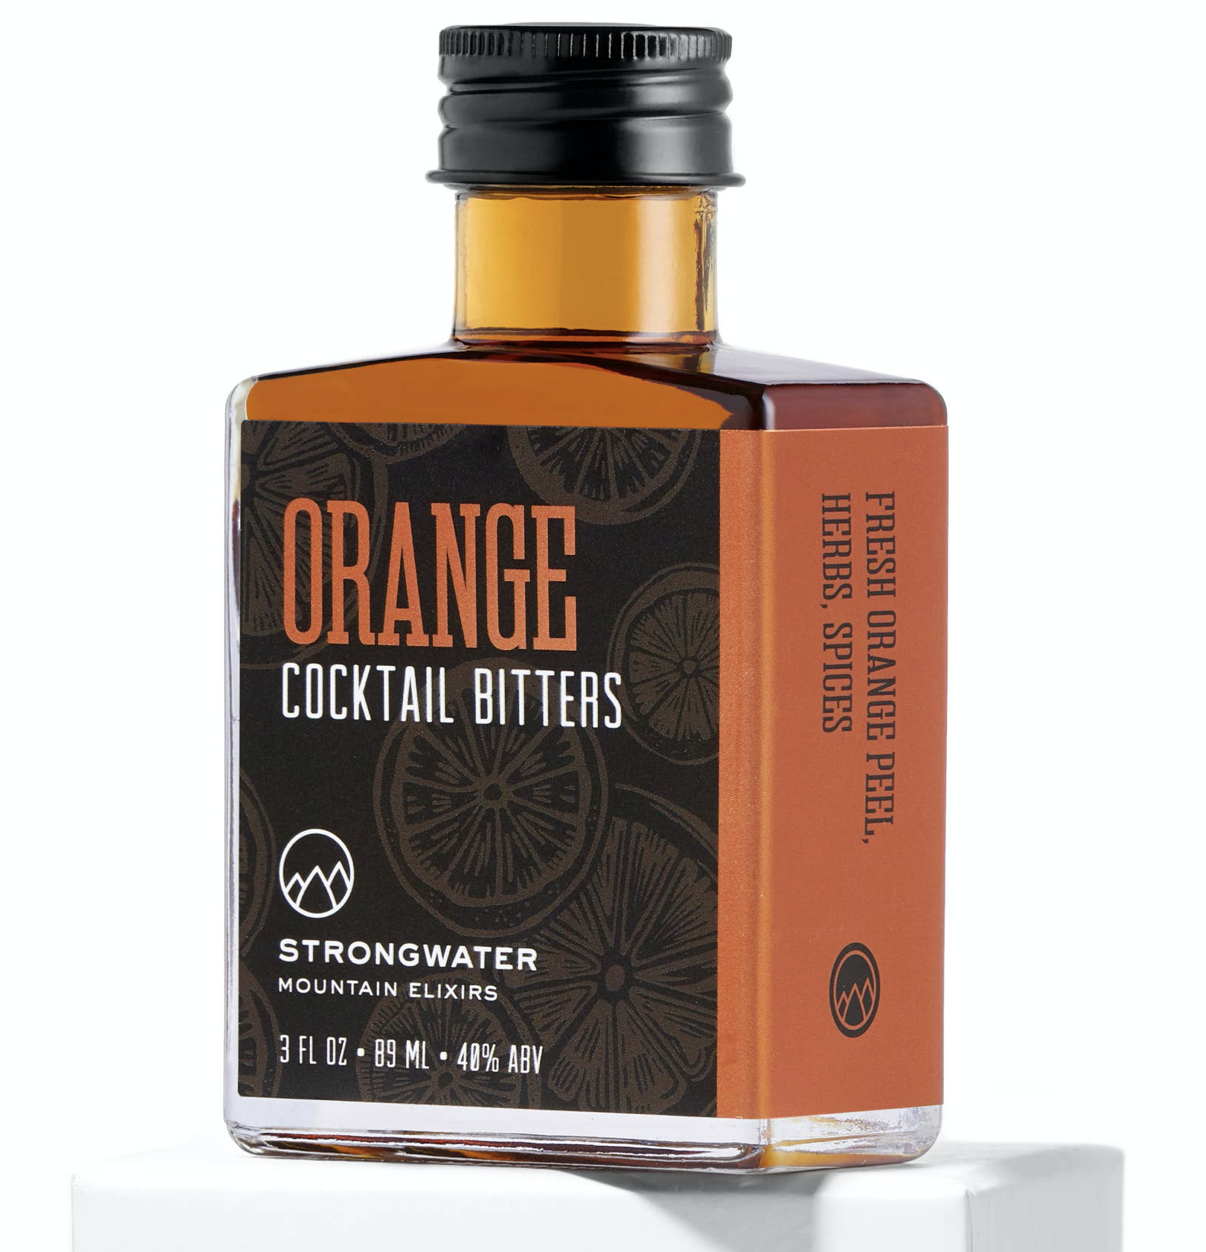 Strongwater Mountain Elixirs Orange Cocktail Bitters